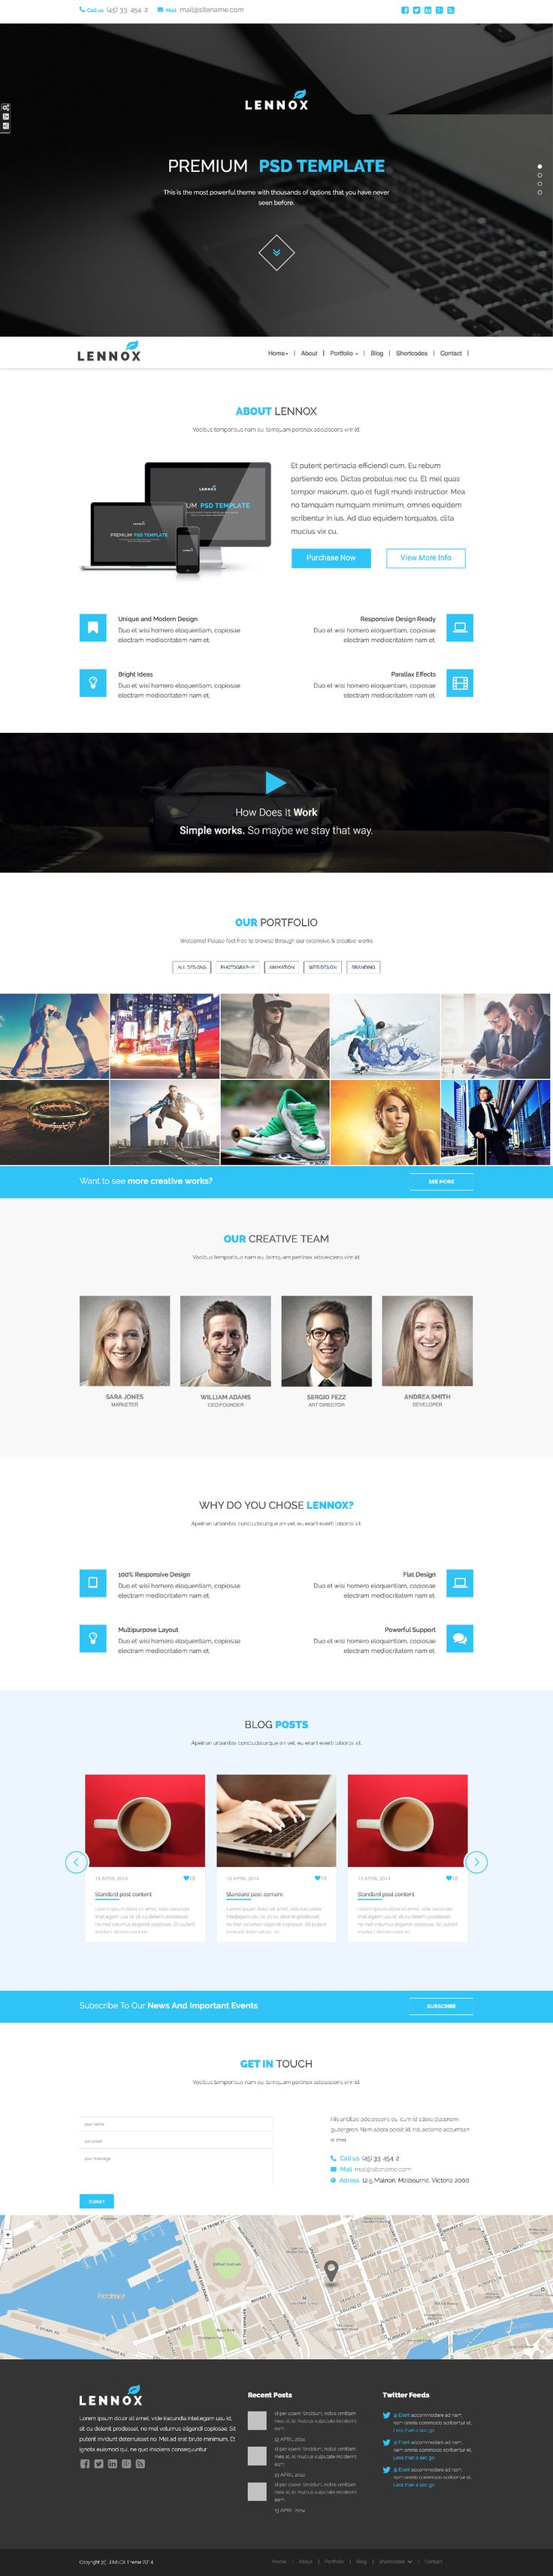 Sneak preview of our next FREE Bootstrap theme!